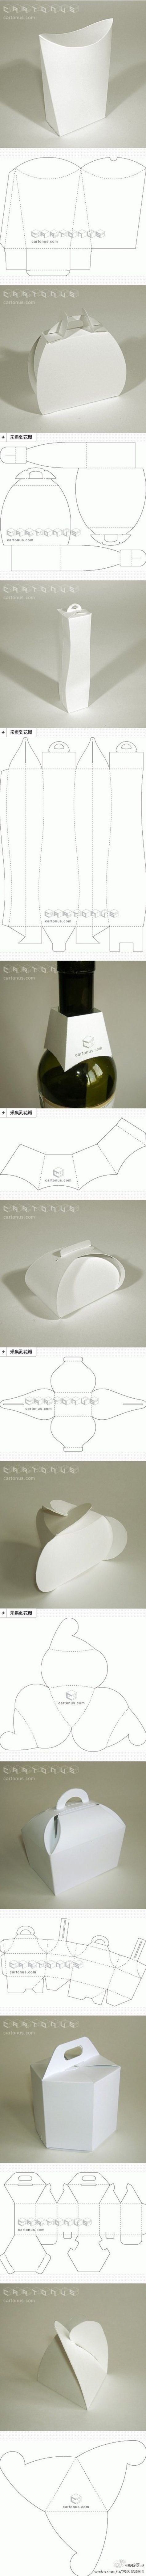 Creative packaging template compilation ~~~ small visual China!  DIY Queen (turn)